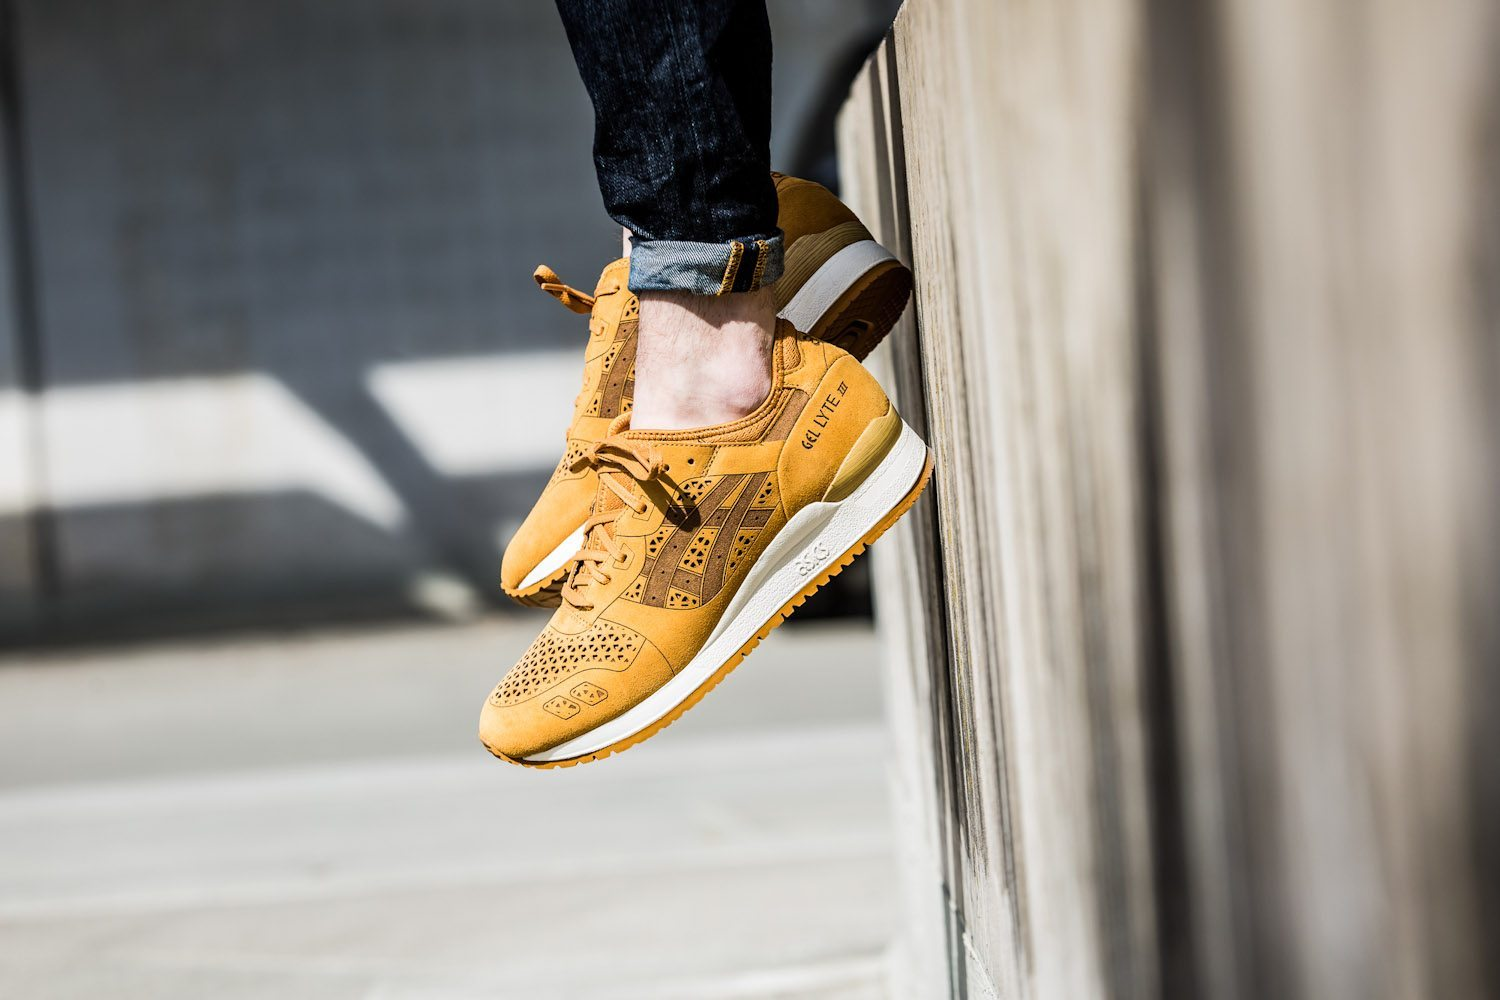 Asics Gel Lyte III Laser Cut Pack 4